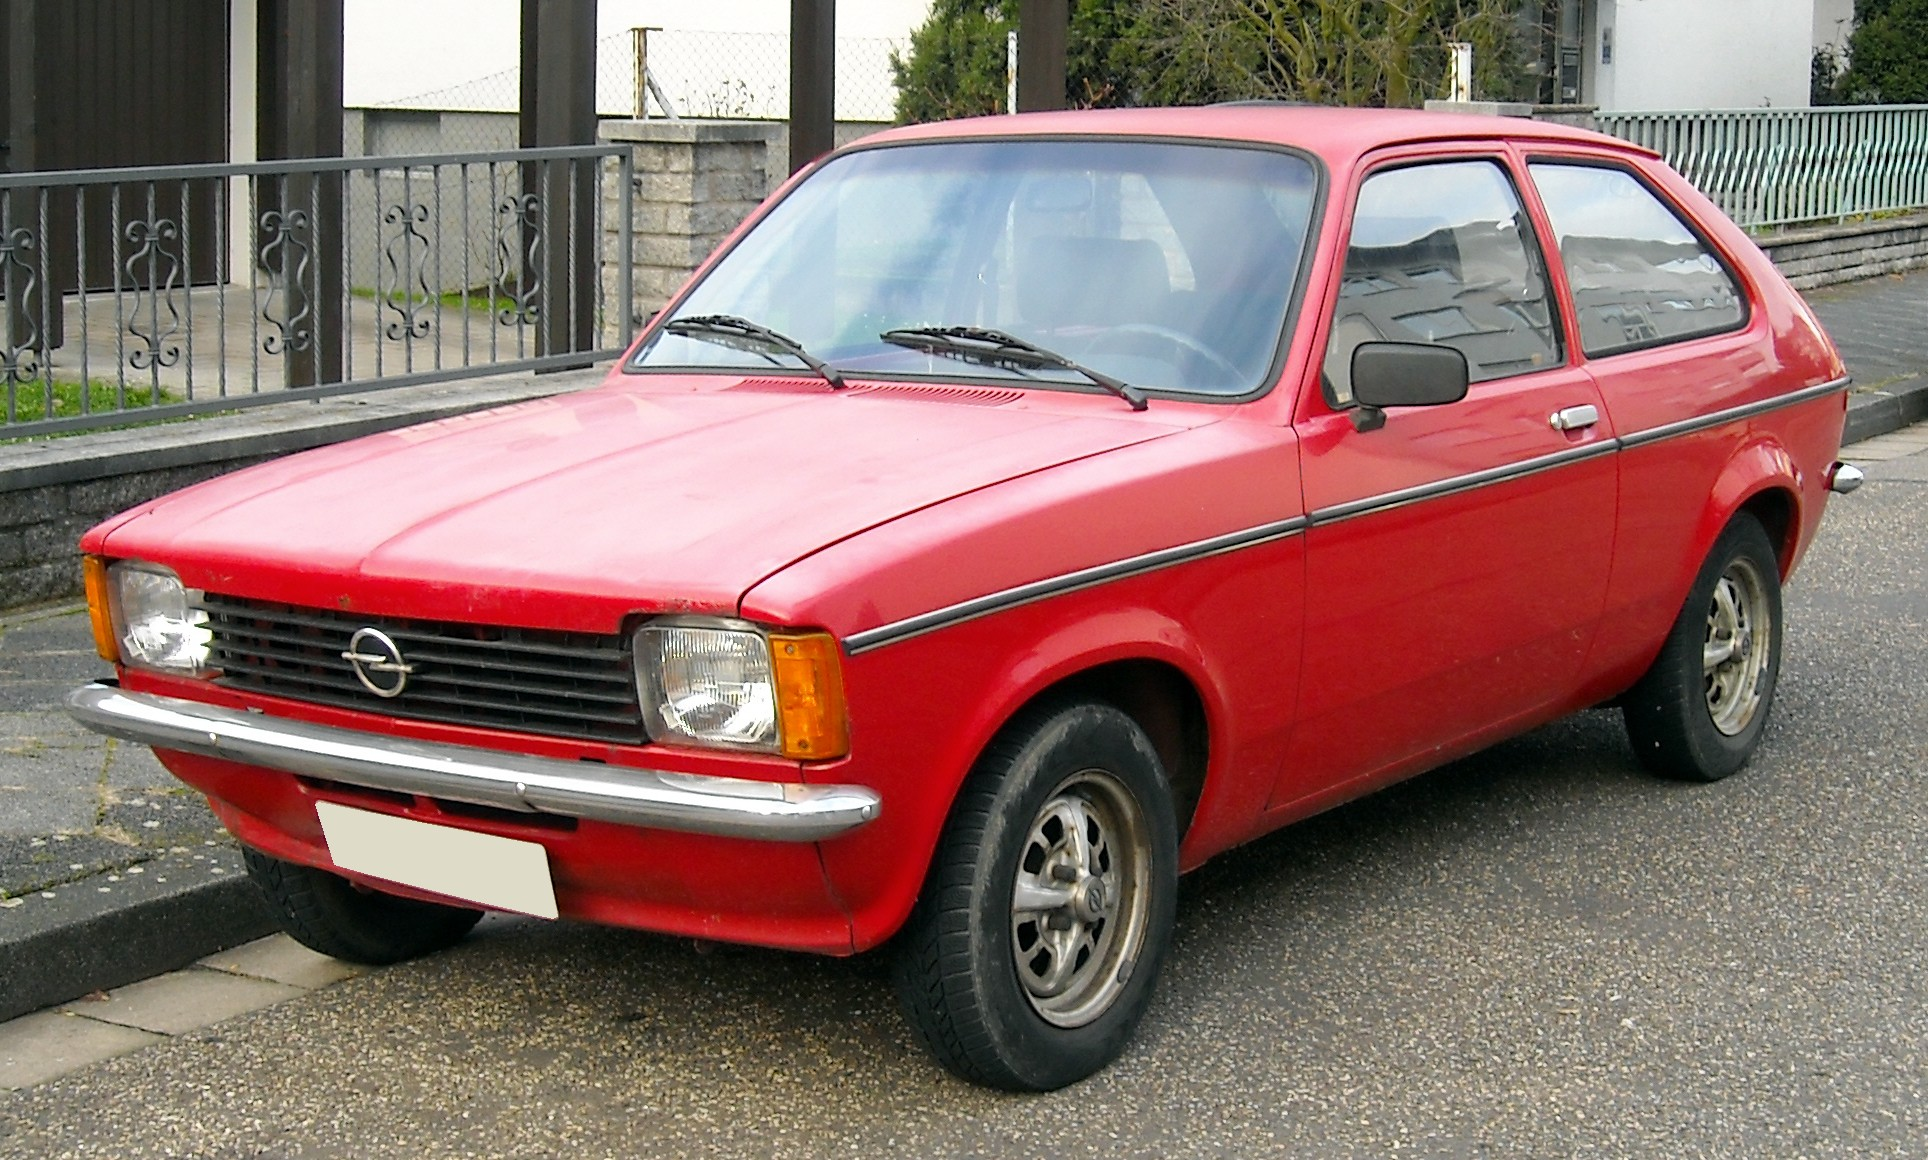 file opel kadett c city front wikimedia commons. Black Bedroom Furniture Sets. Home Design Ideas